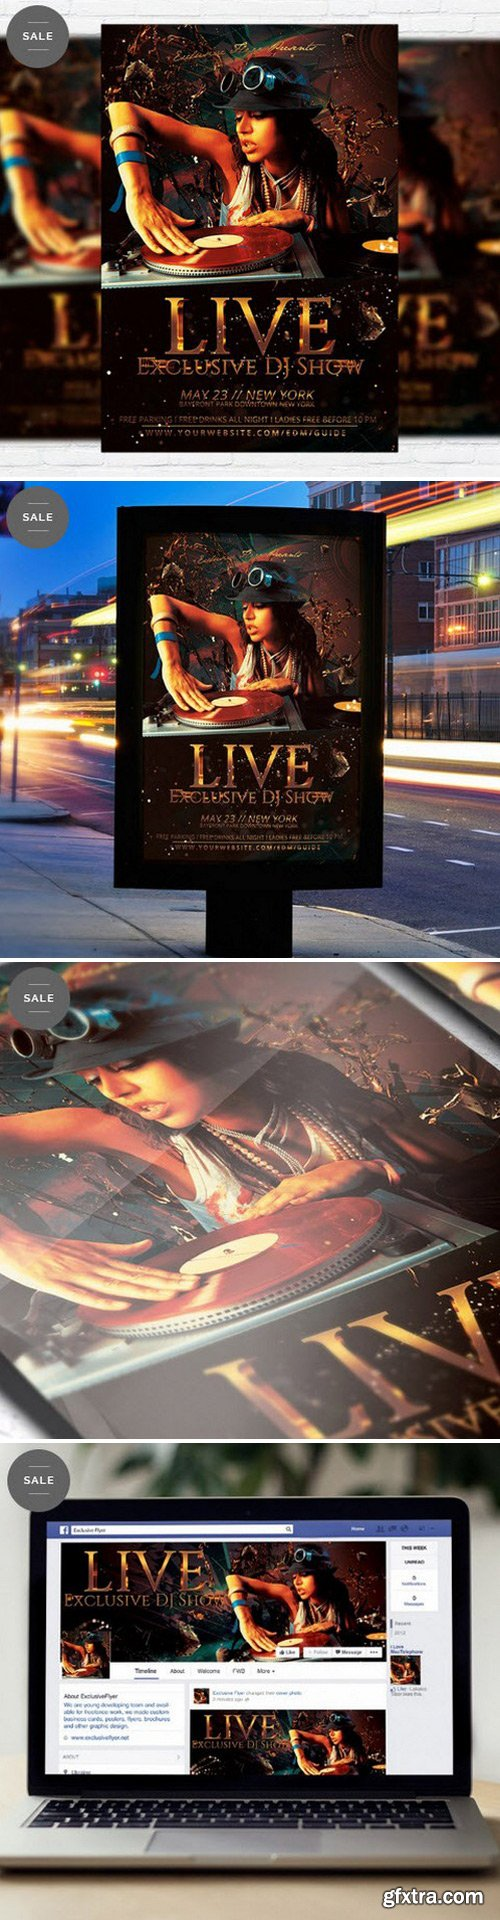 Exclusive Dj Live Show – Flyer Template + Facebook Cover